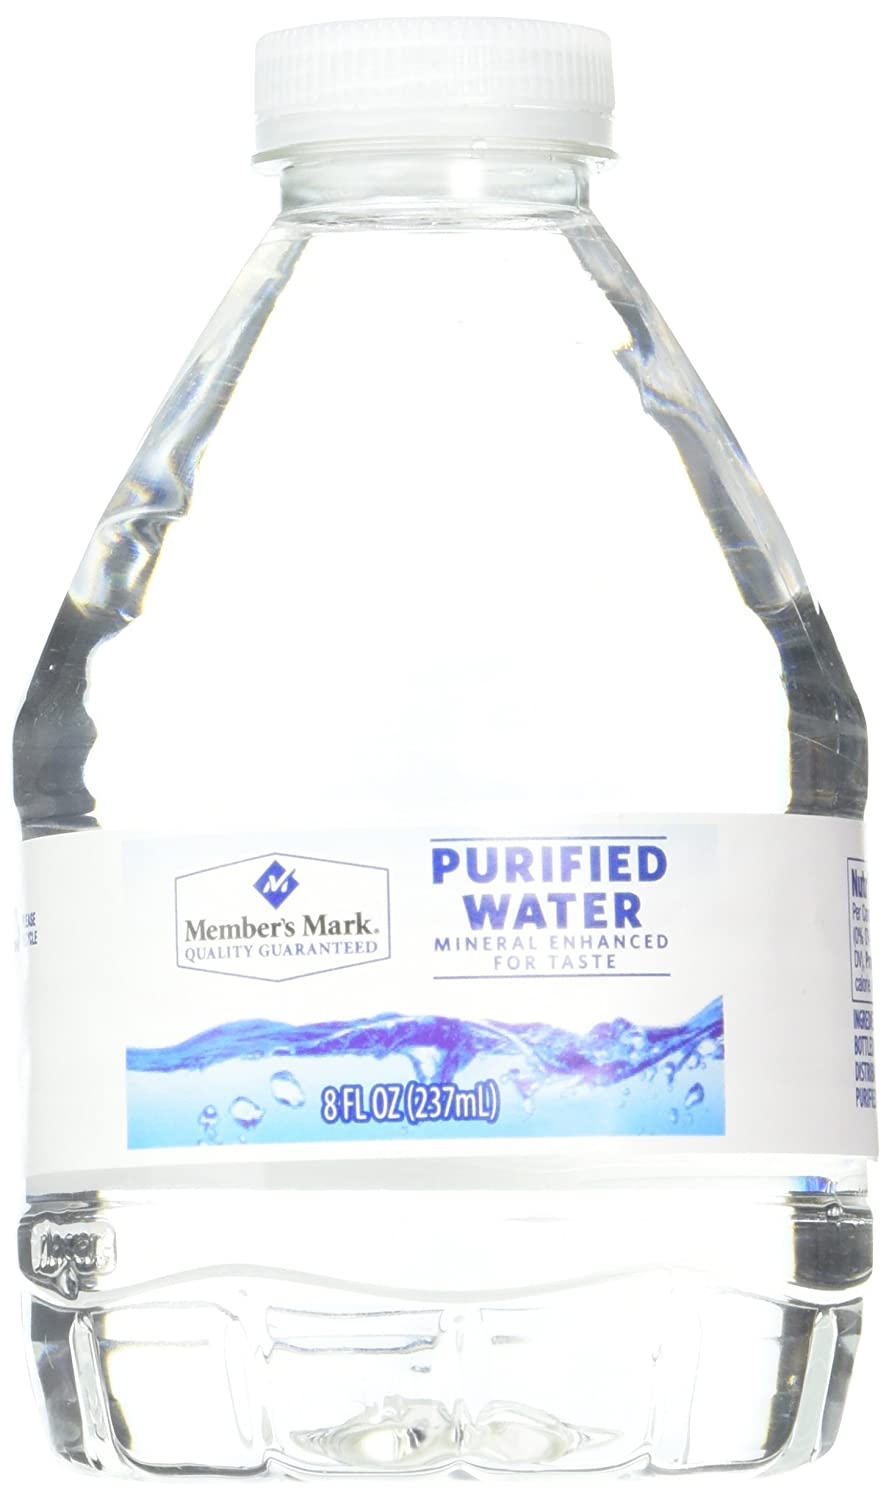 Purifying Drinking Water Members Mark Purified Water 80 Count Amazoncom Grocery